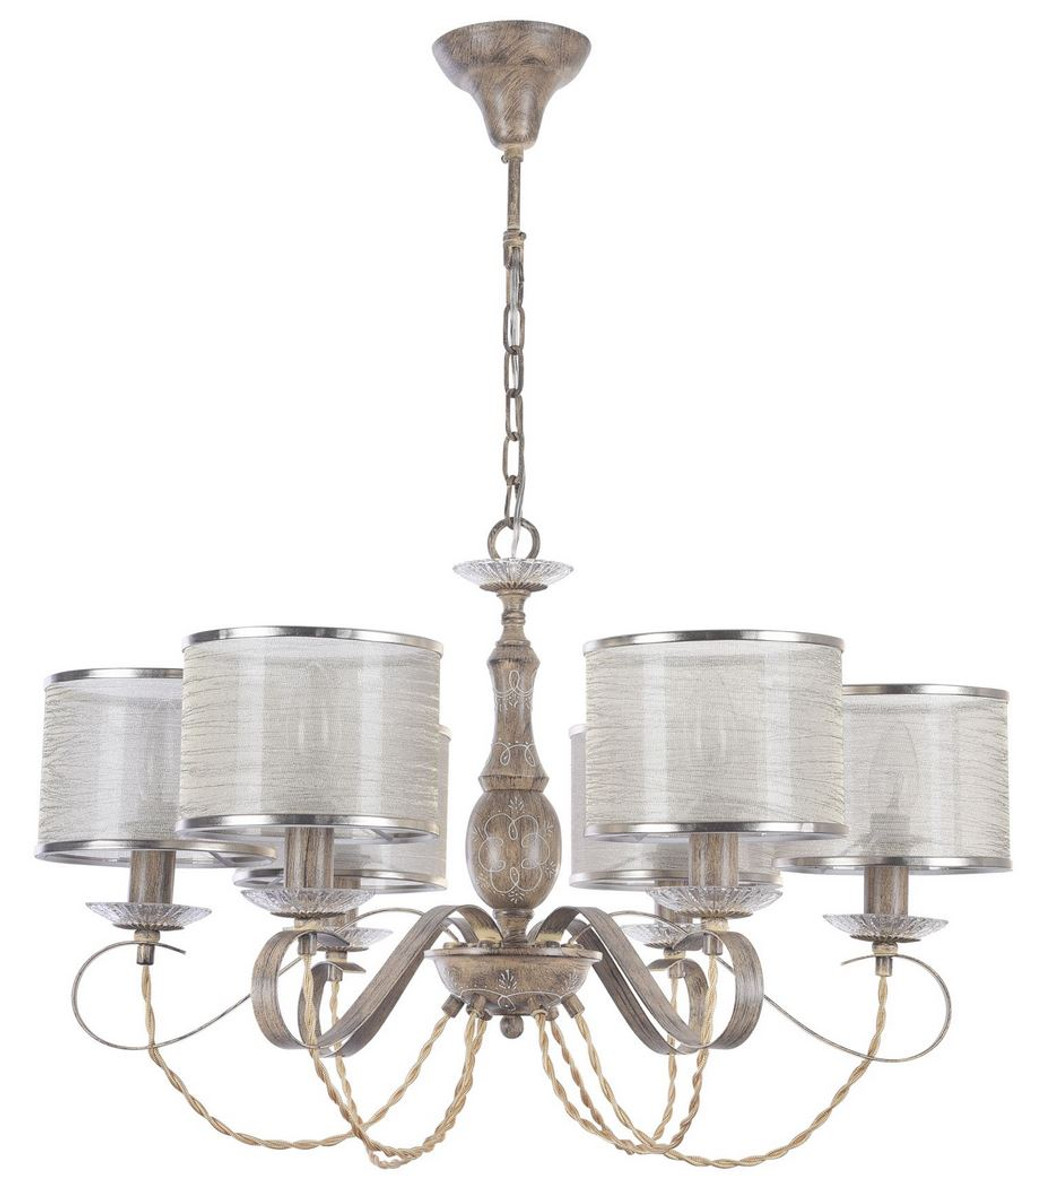 Baroque chandeliers casa padrino baroque style chandelier brown 67 x h 44 cm baroque chandelier aloadofball Images